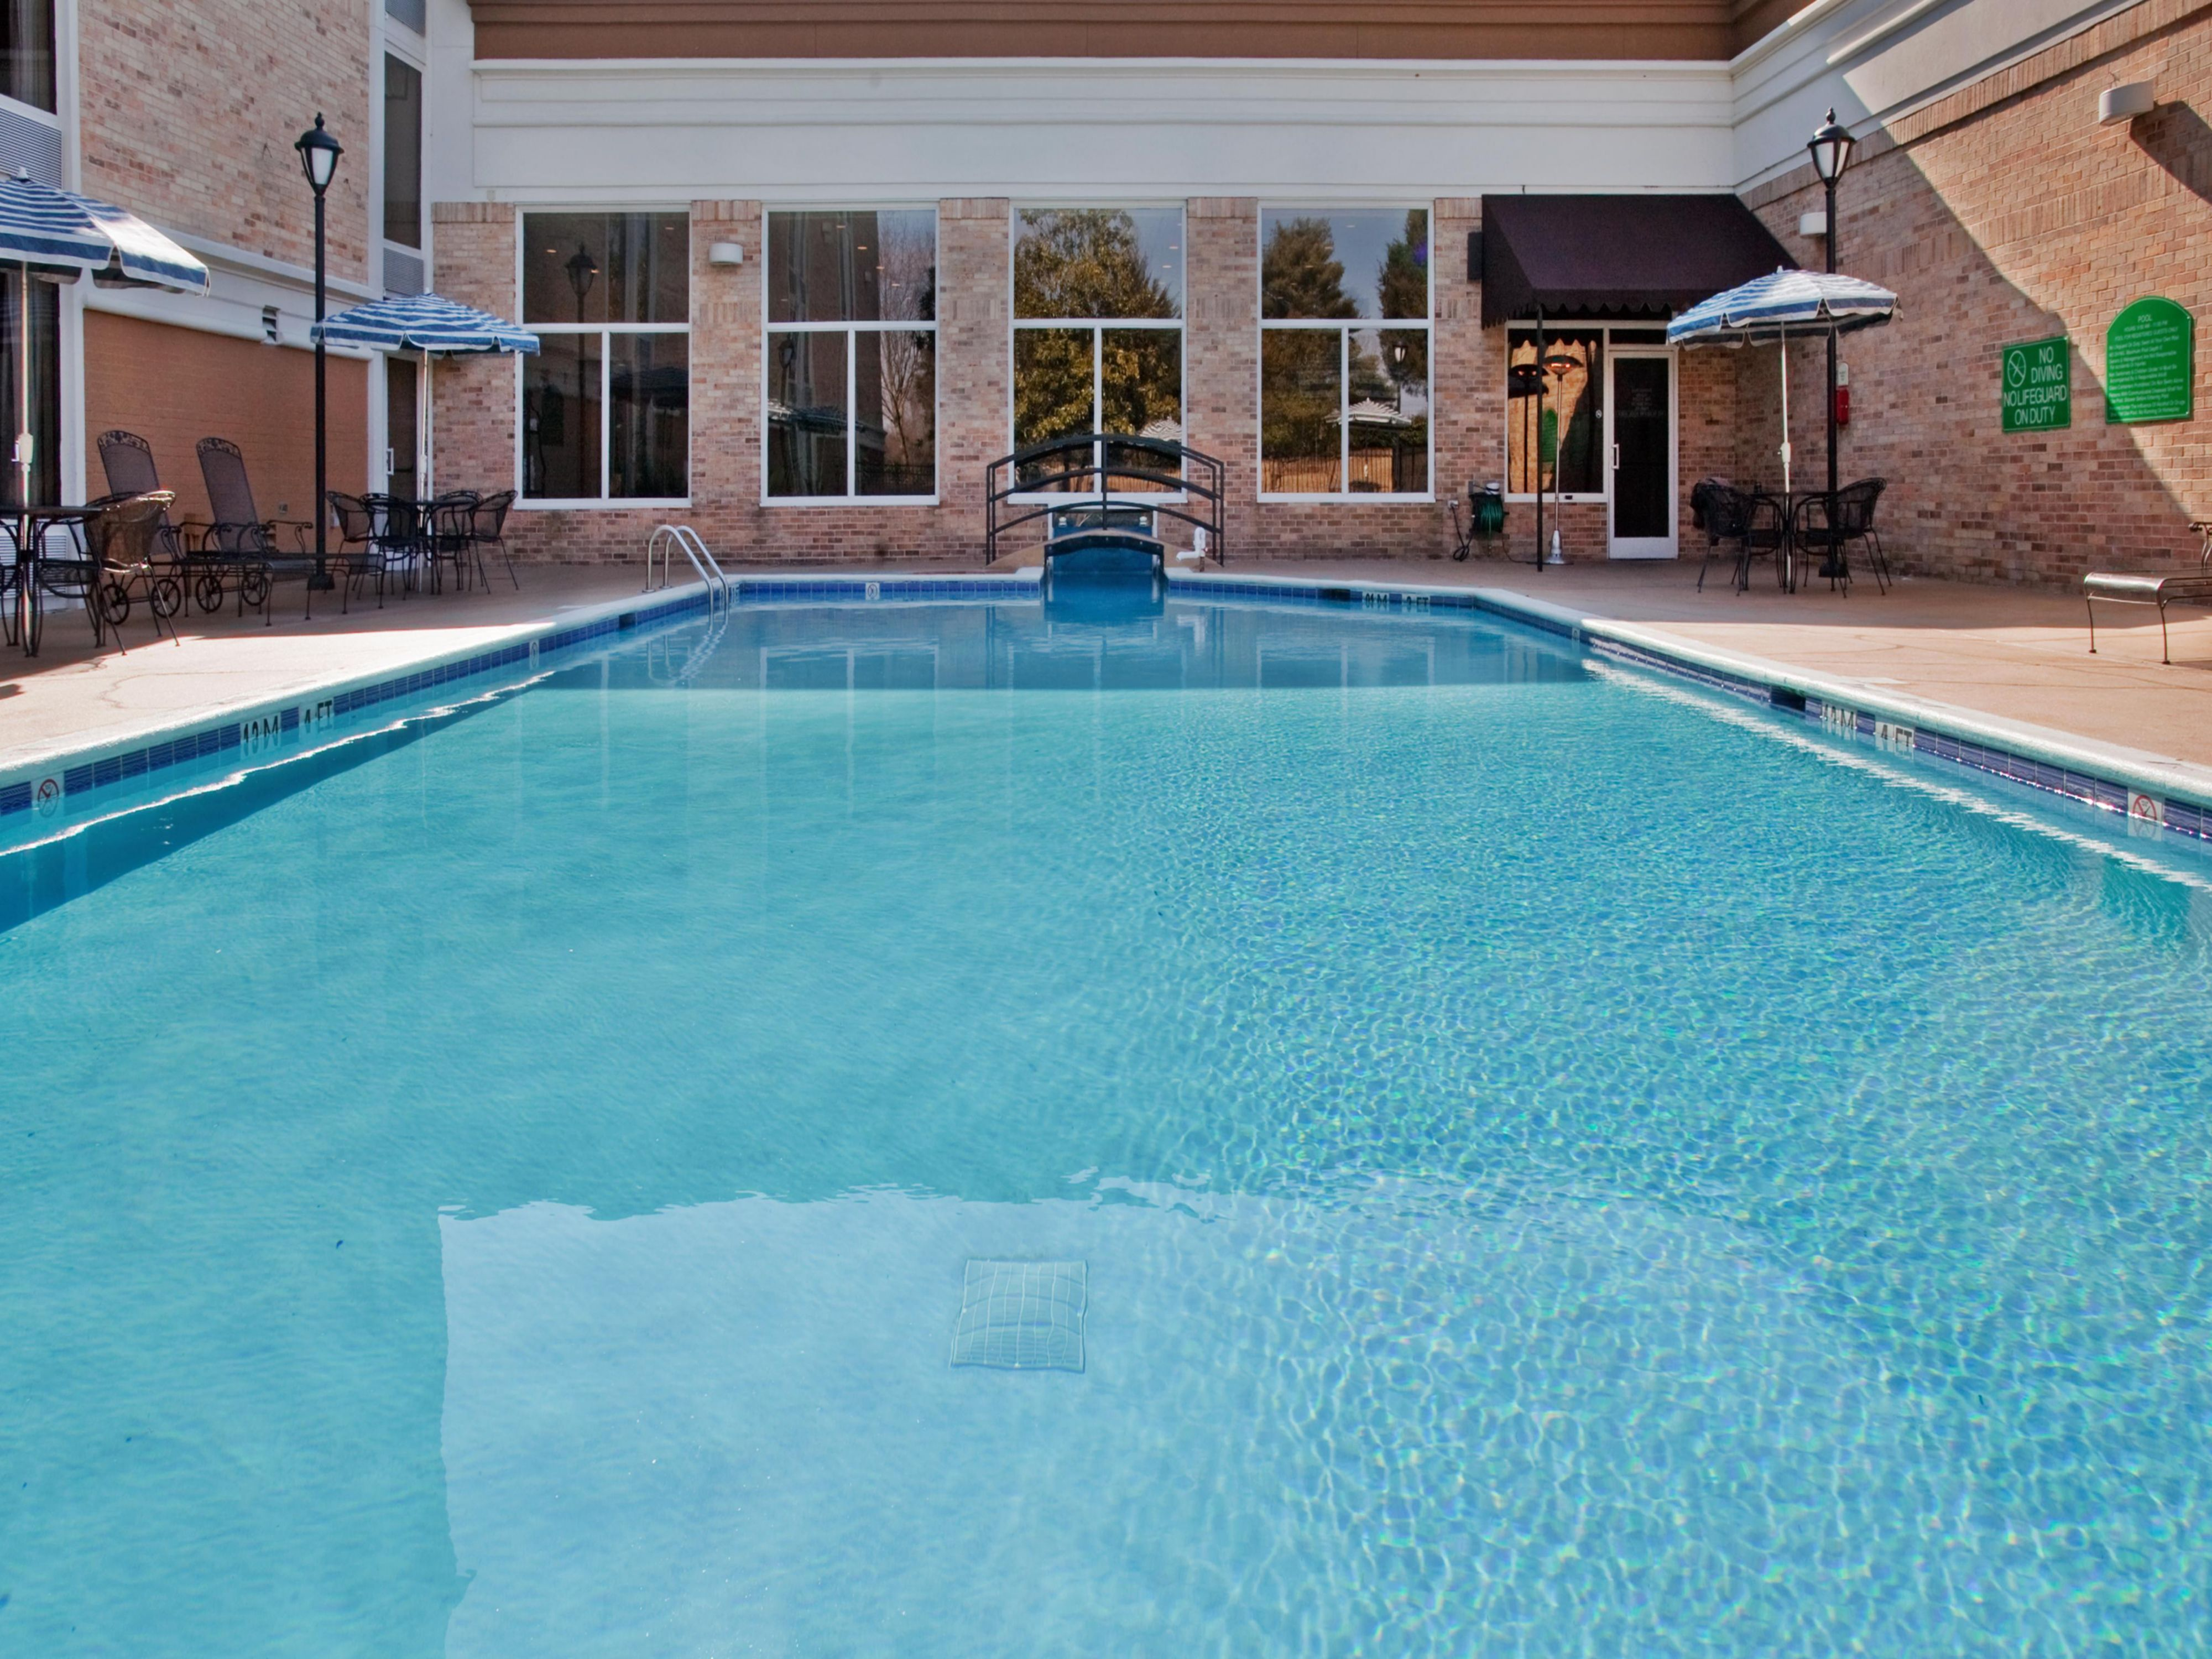 Holiday Inn Research Park Outdoor Swimming Pool